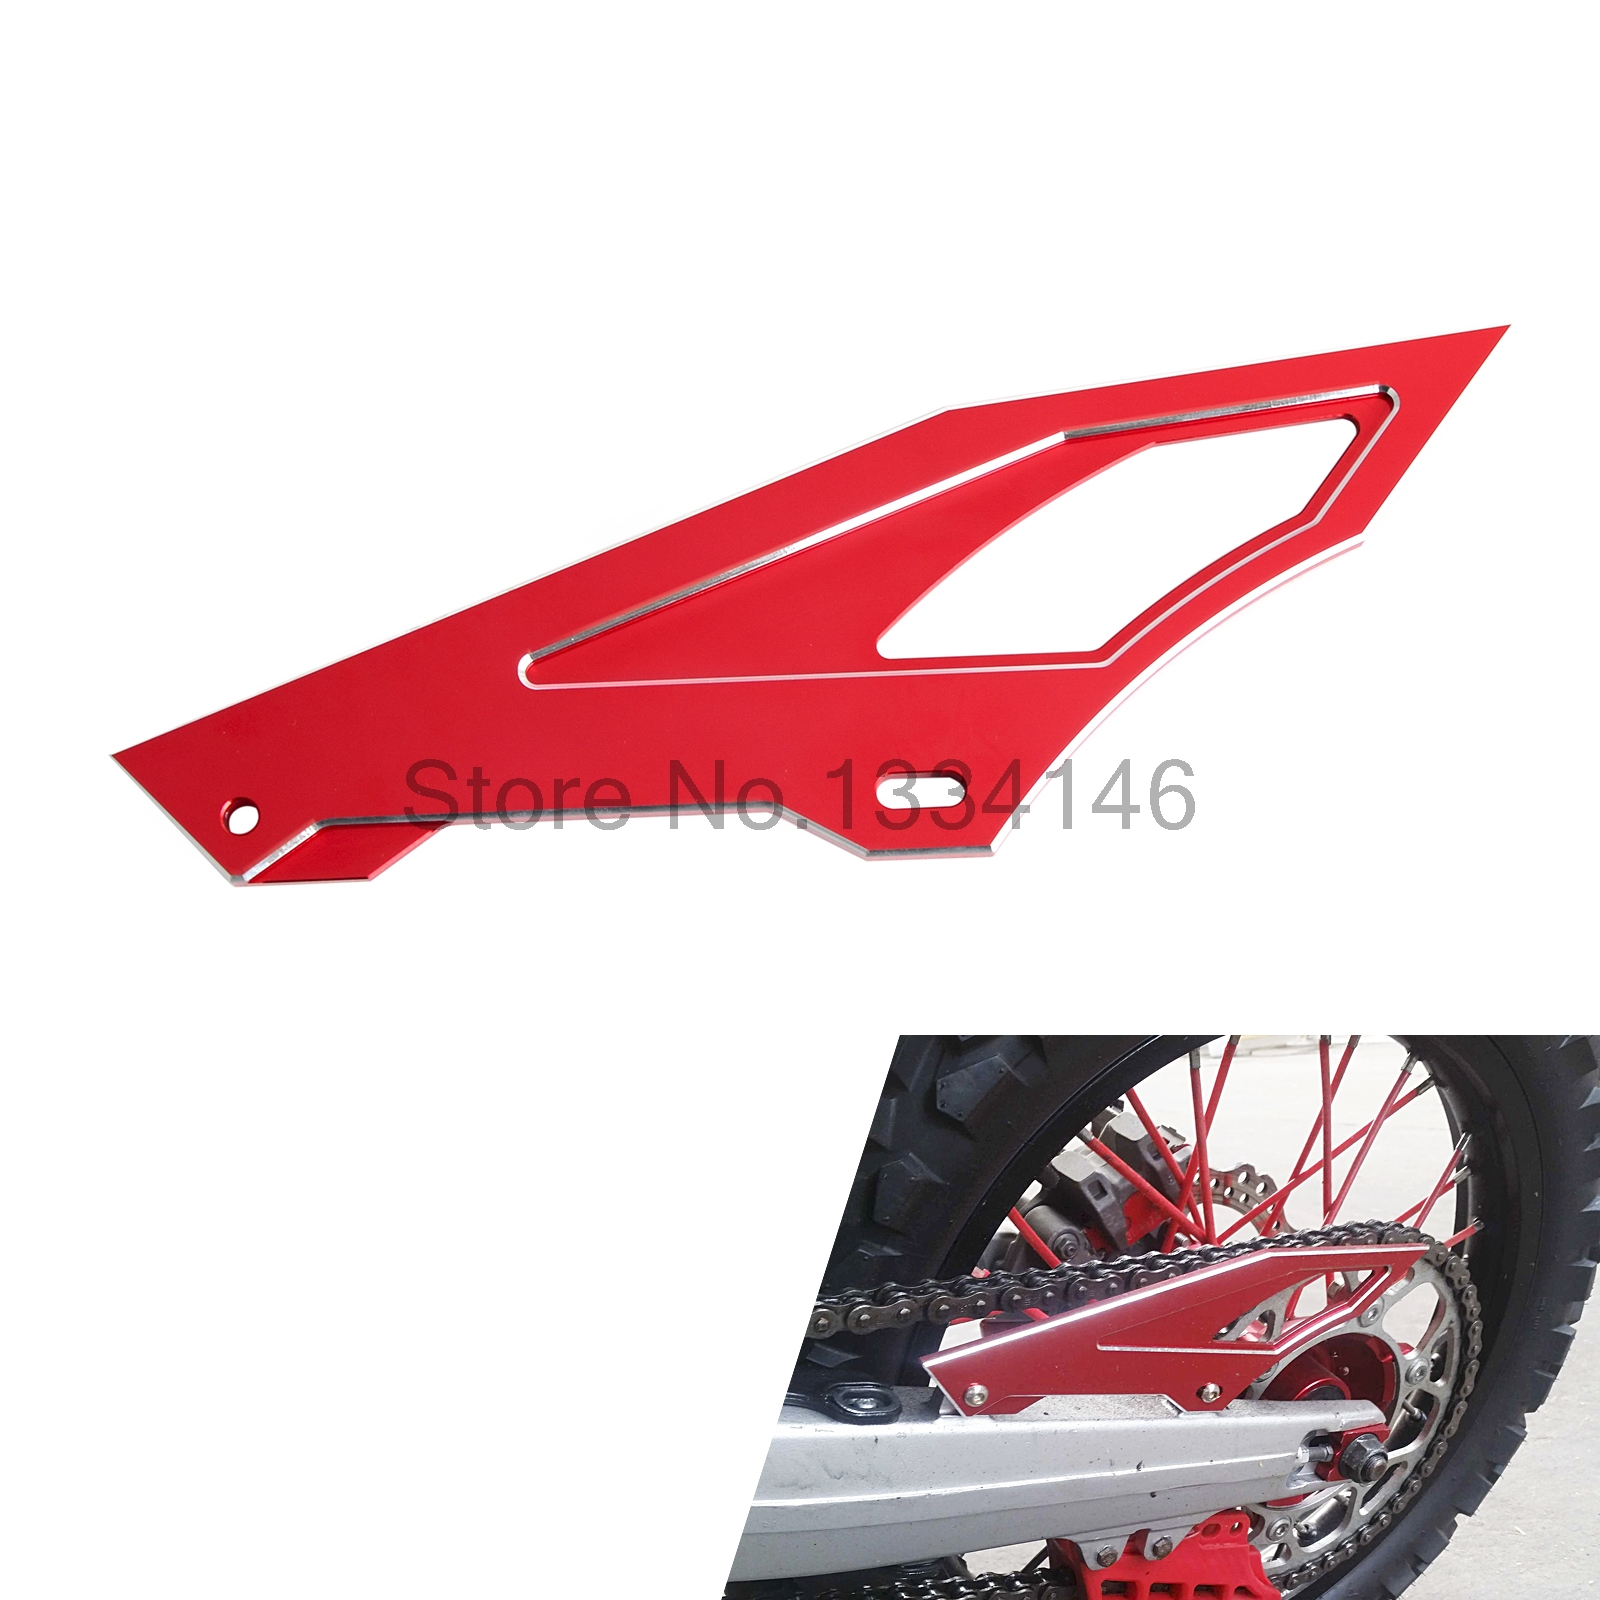 Motorcycle CNC Chain Cover Guard For Honda CRF250L/M CRF 250L 250M 2012-2015 CRM 250R 250AR XR250/Baja Yamaha Serow225 TW200/225<br>